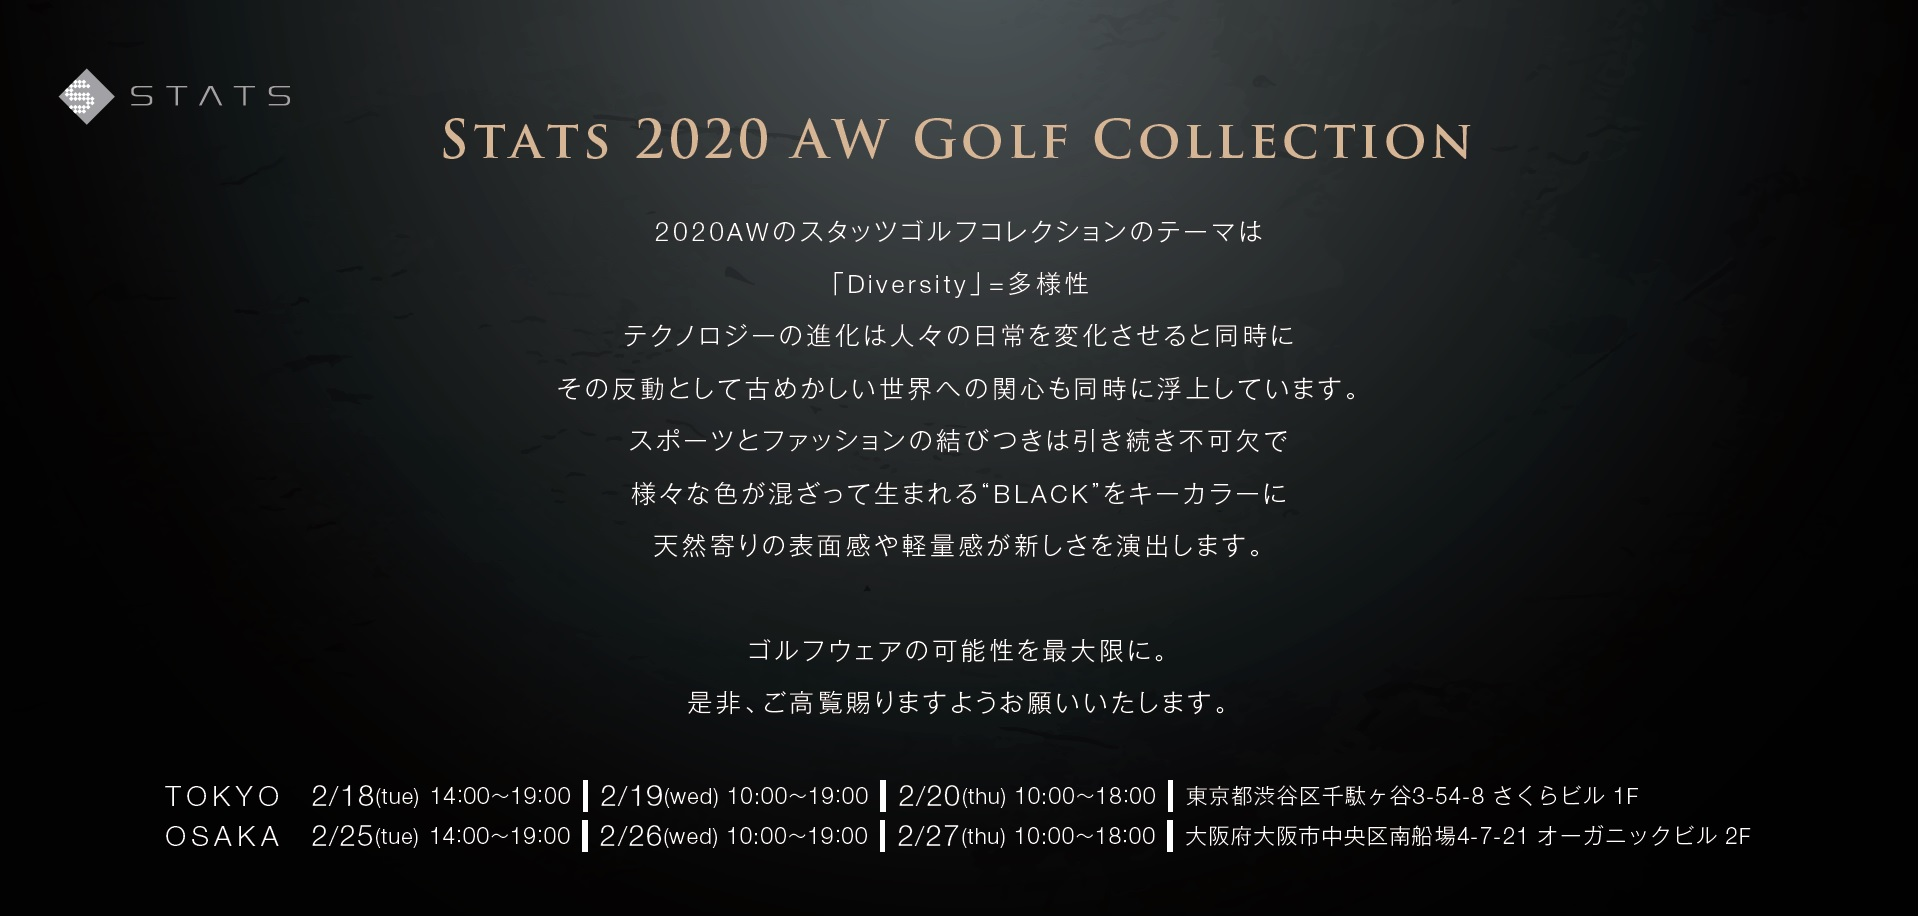 STATS 2020 AW GOLF COLLECTION